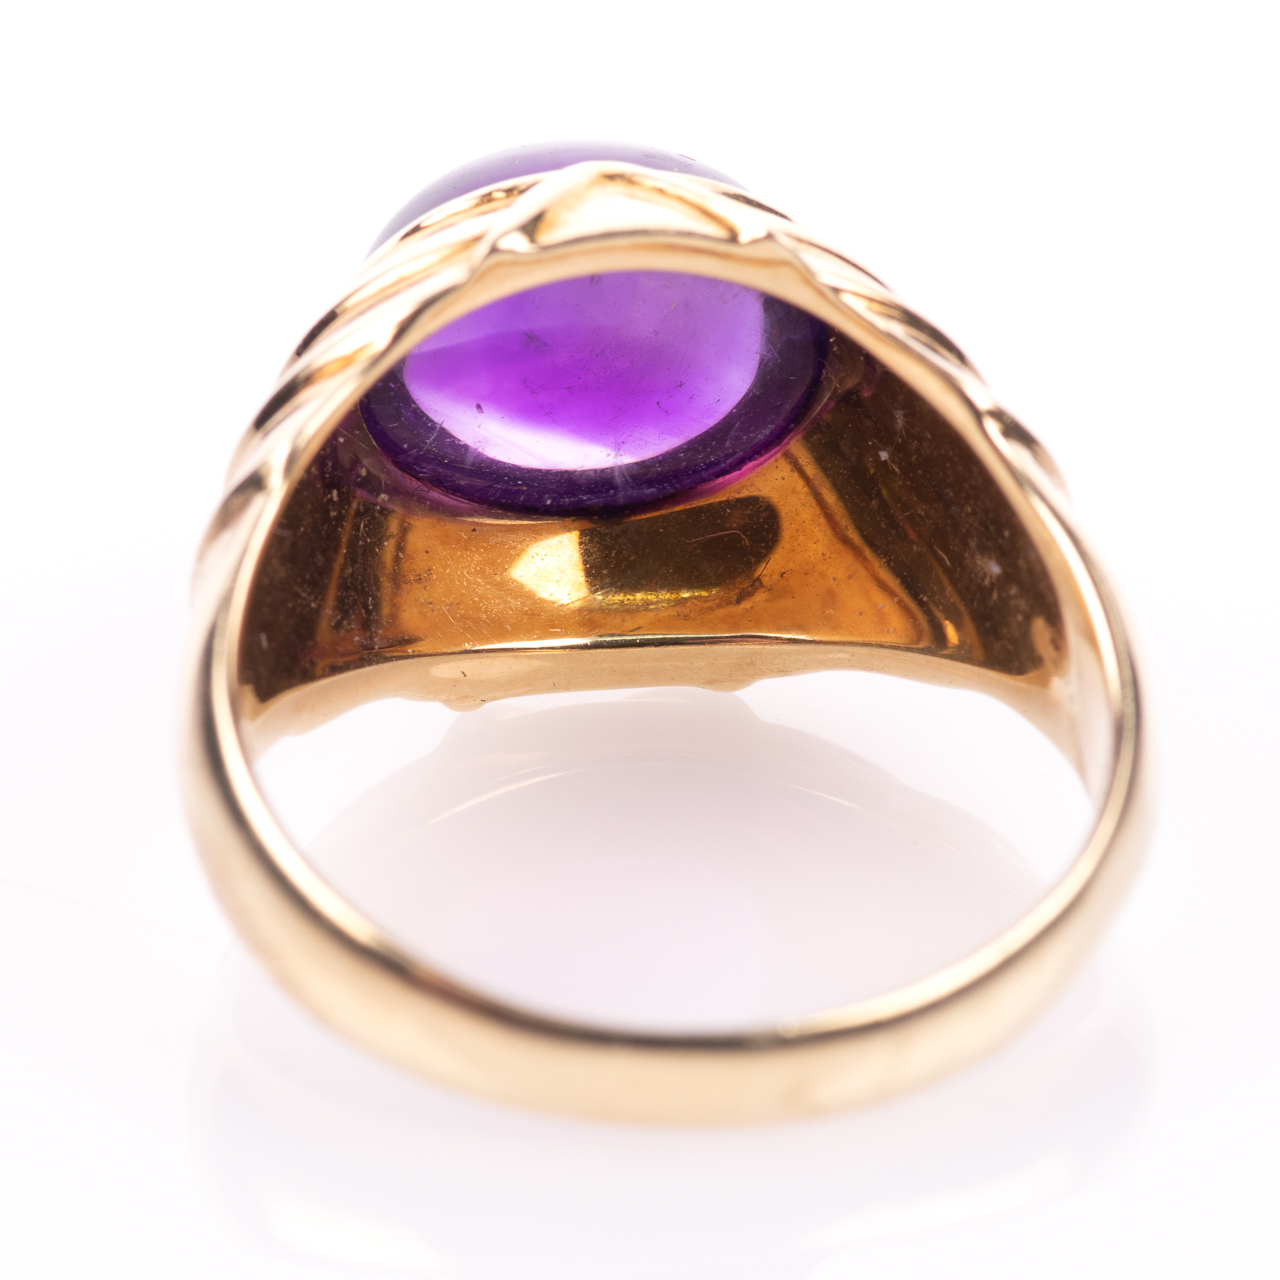 14ct Gold Amethyst Cabochon Ring Egyptian Revival Style - Image 6 of 9